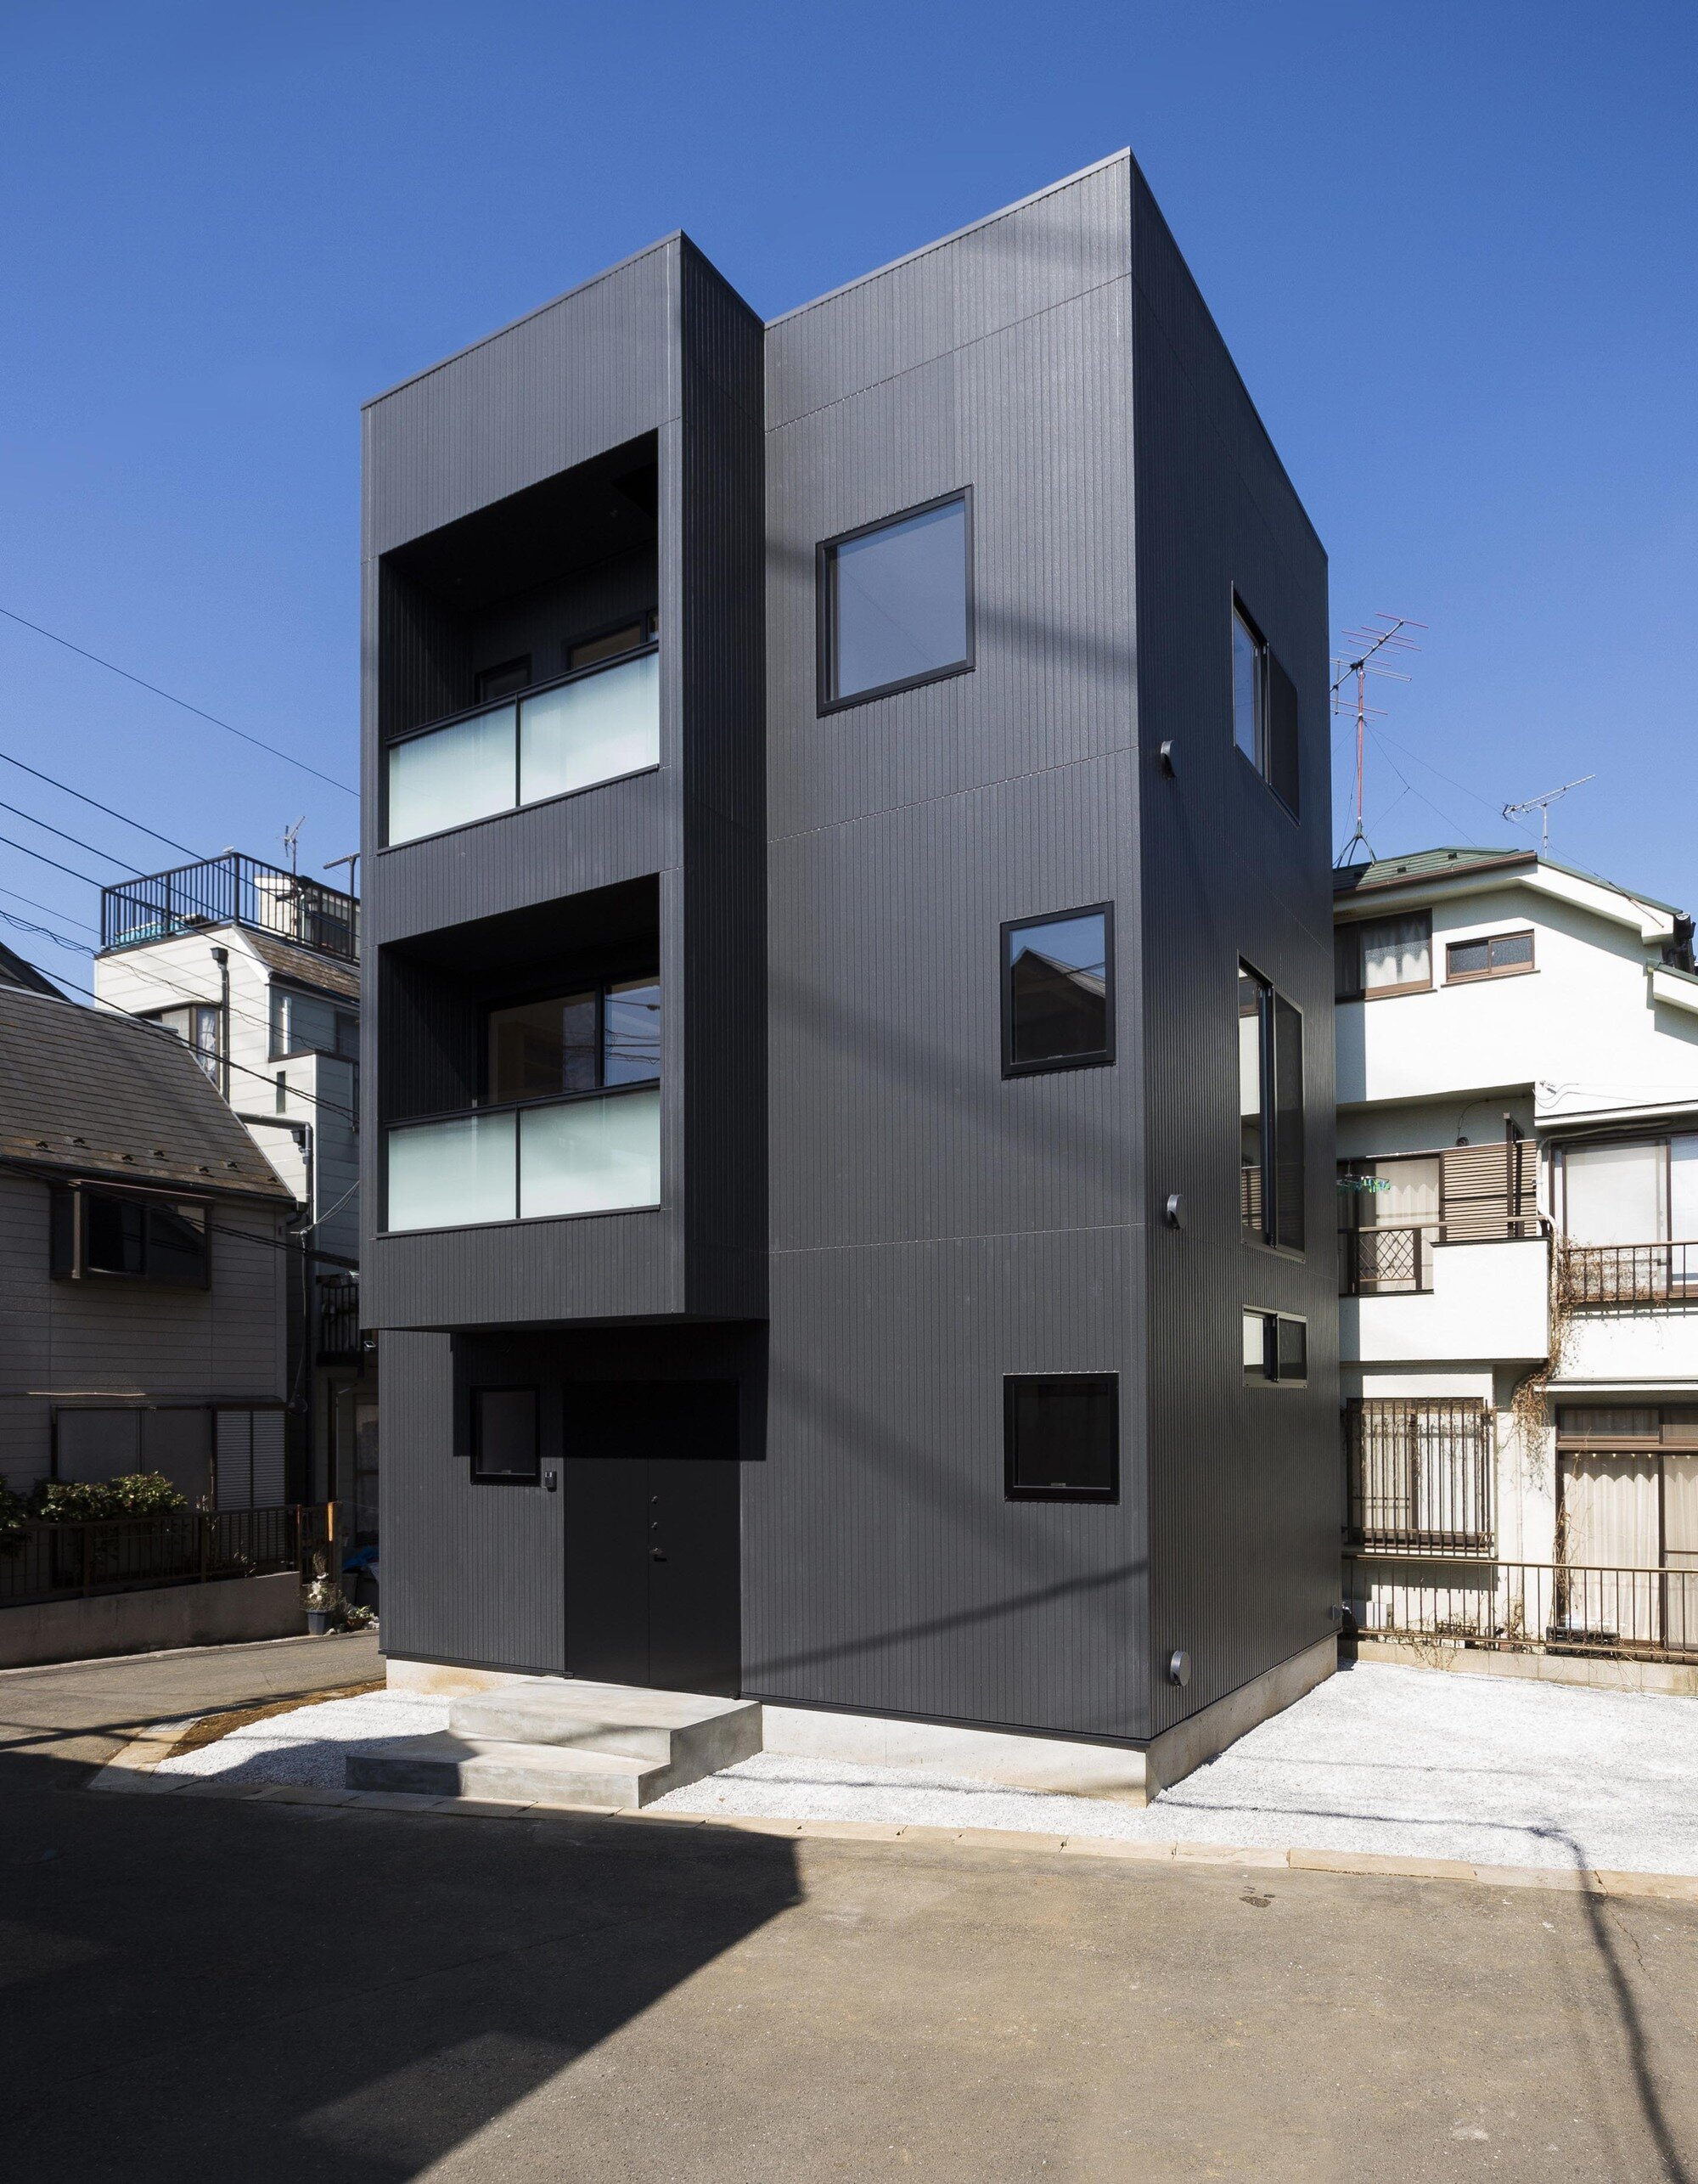 Hibarigaoka S House Makes The Most Of A Small Lot